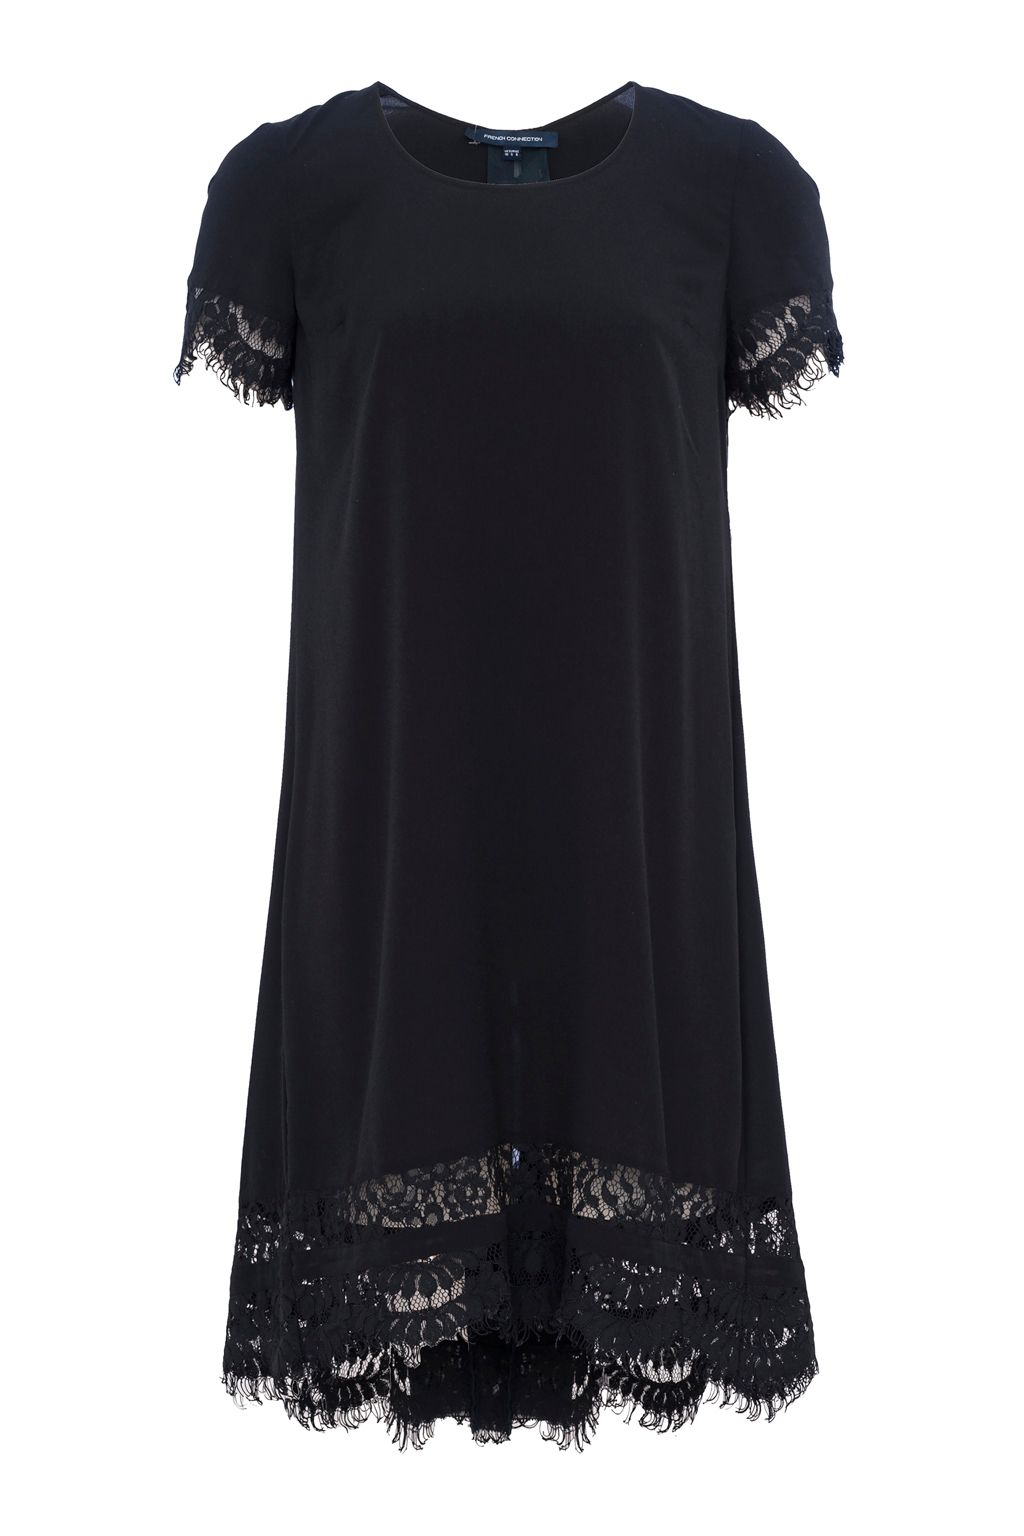 French Connection Classic Crepe and Lace Dress, Black